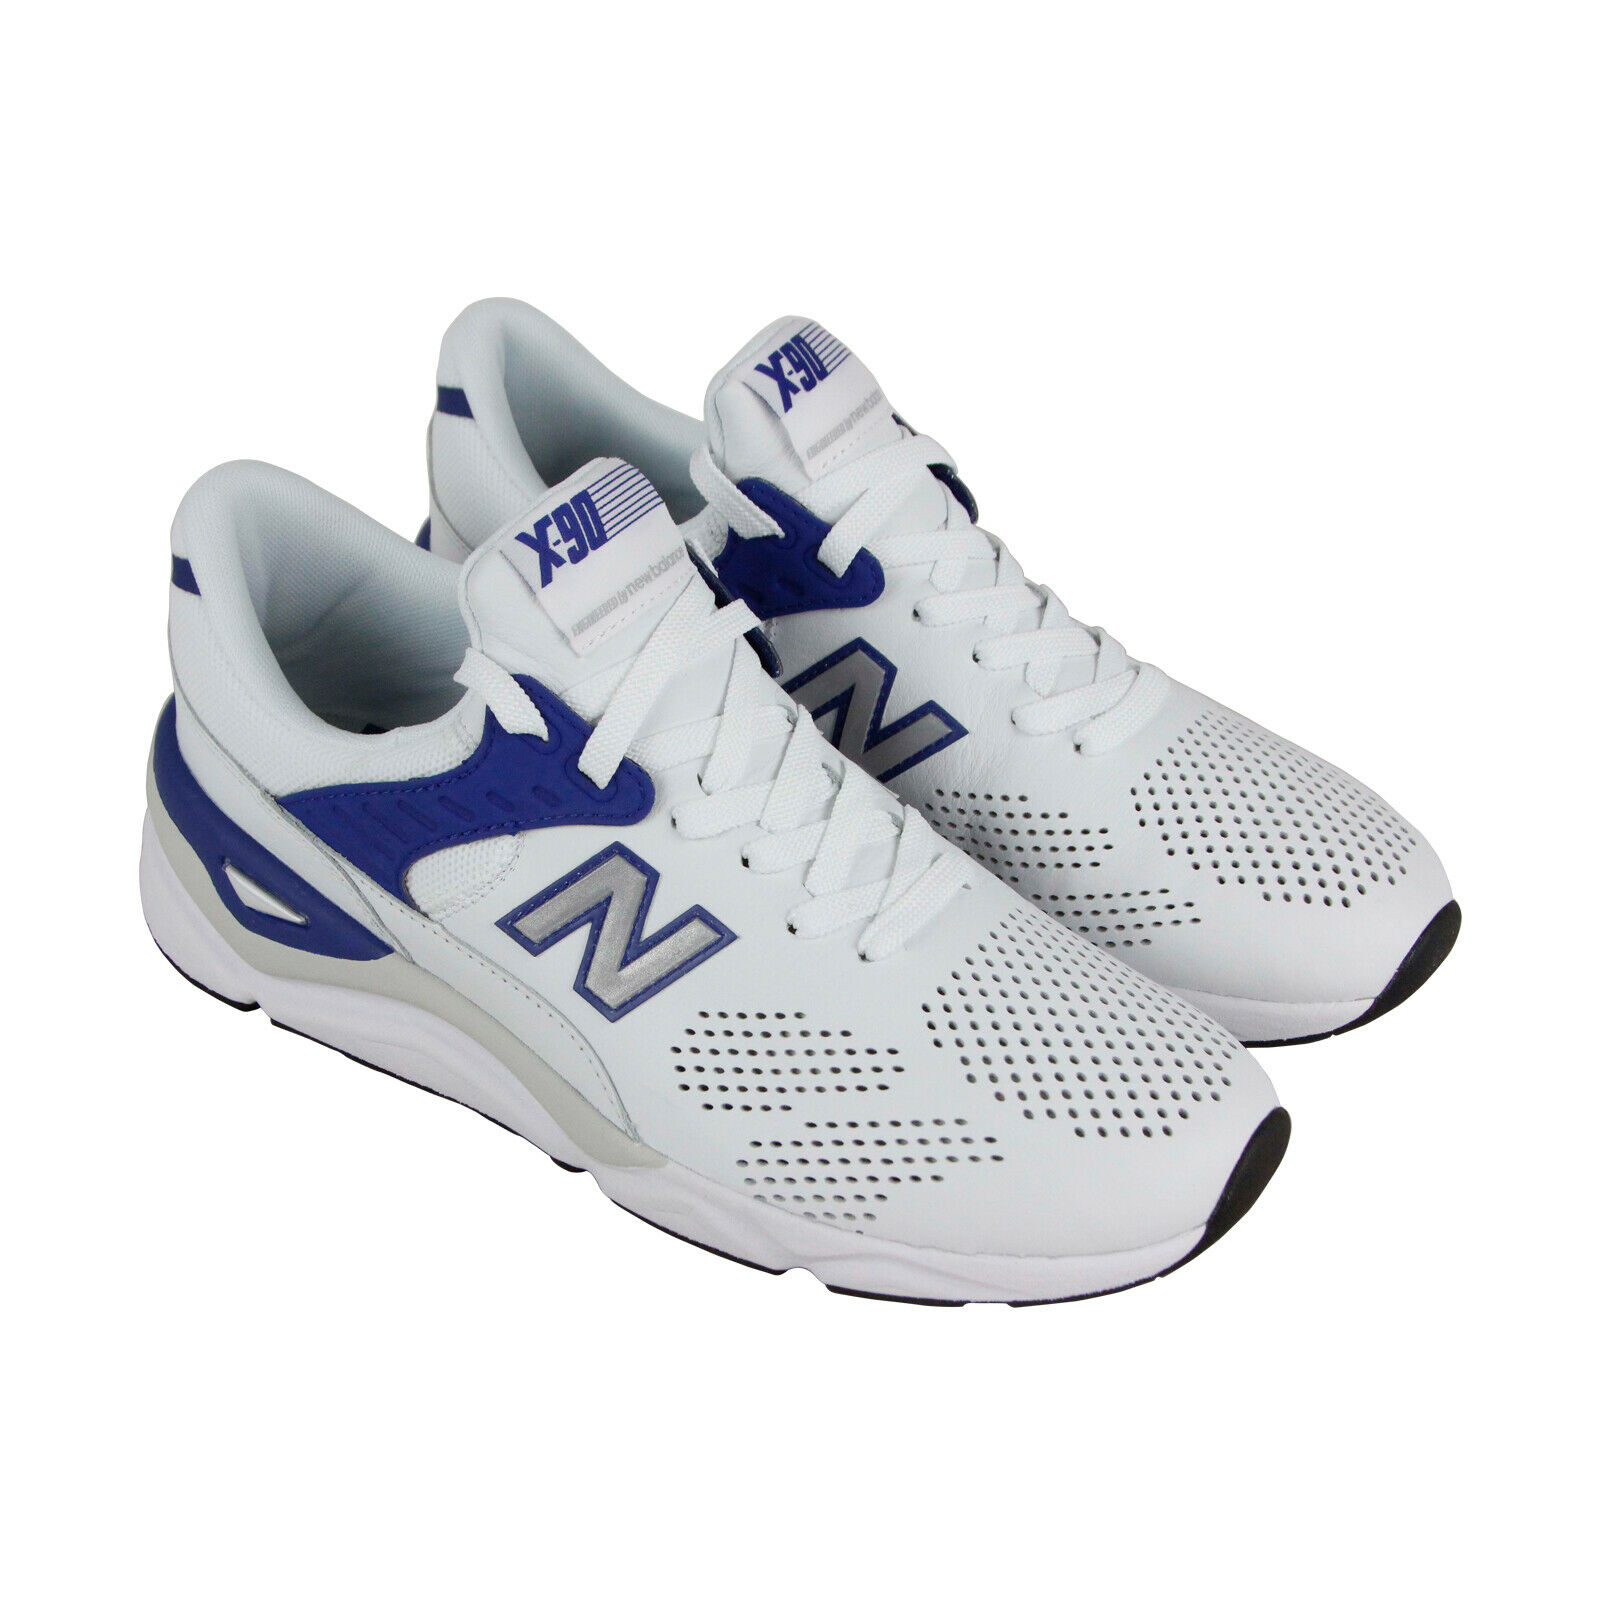 New Balance X-90 MSX90HTA Mens White Leather Casual Low Top Sneakers Shoes